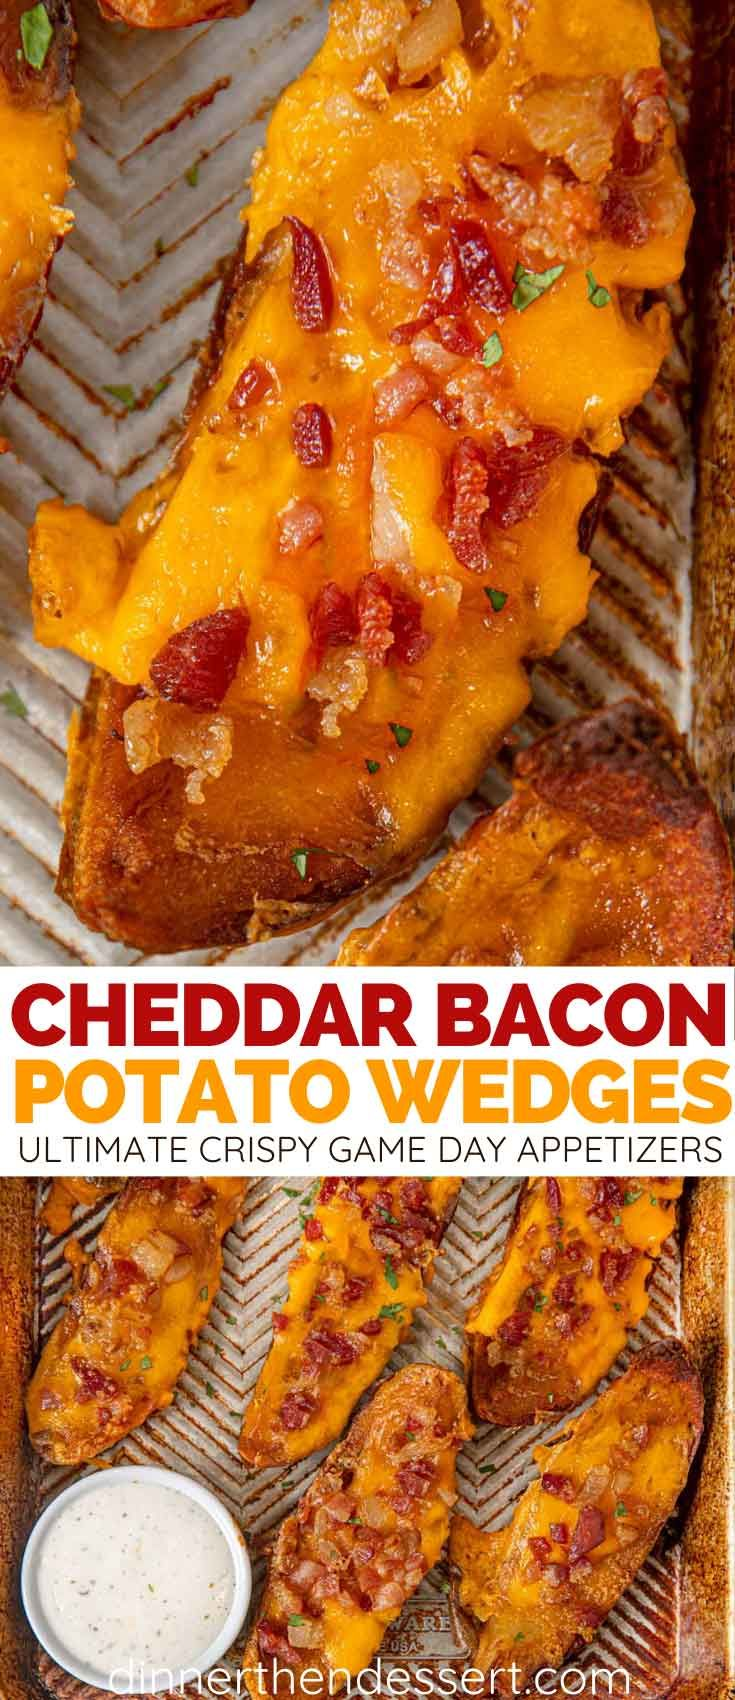 Cheddar Bacon Potato Wedges are fried with cheddar cheese and lots of bacon. Its the ultimate cris